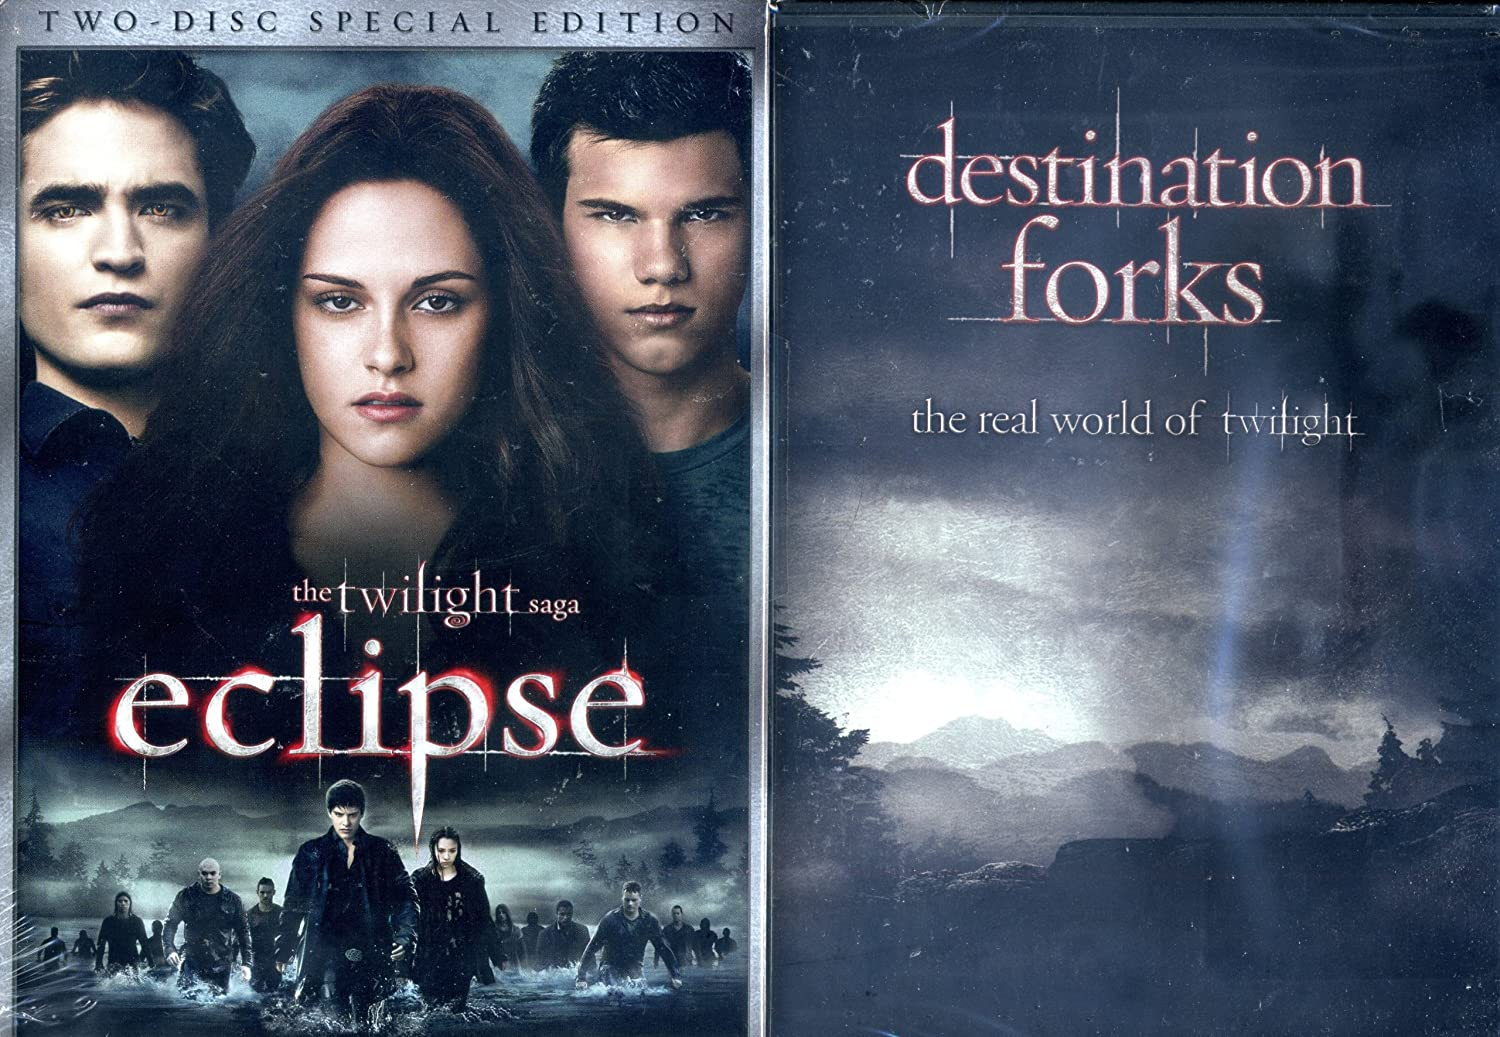 The Twilight Saga: Eclipse - Two Disc / Destination Forks: Real World of Twilight 2-Pack: Amazon.es: Cine y Series TV